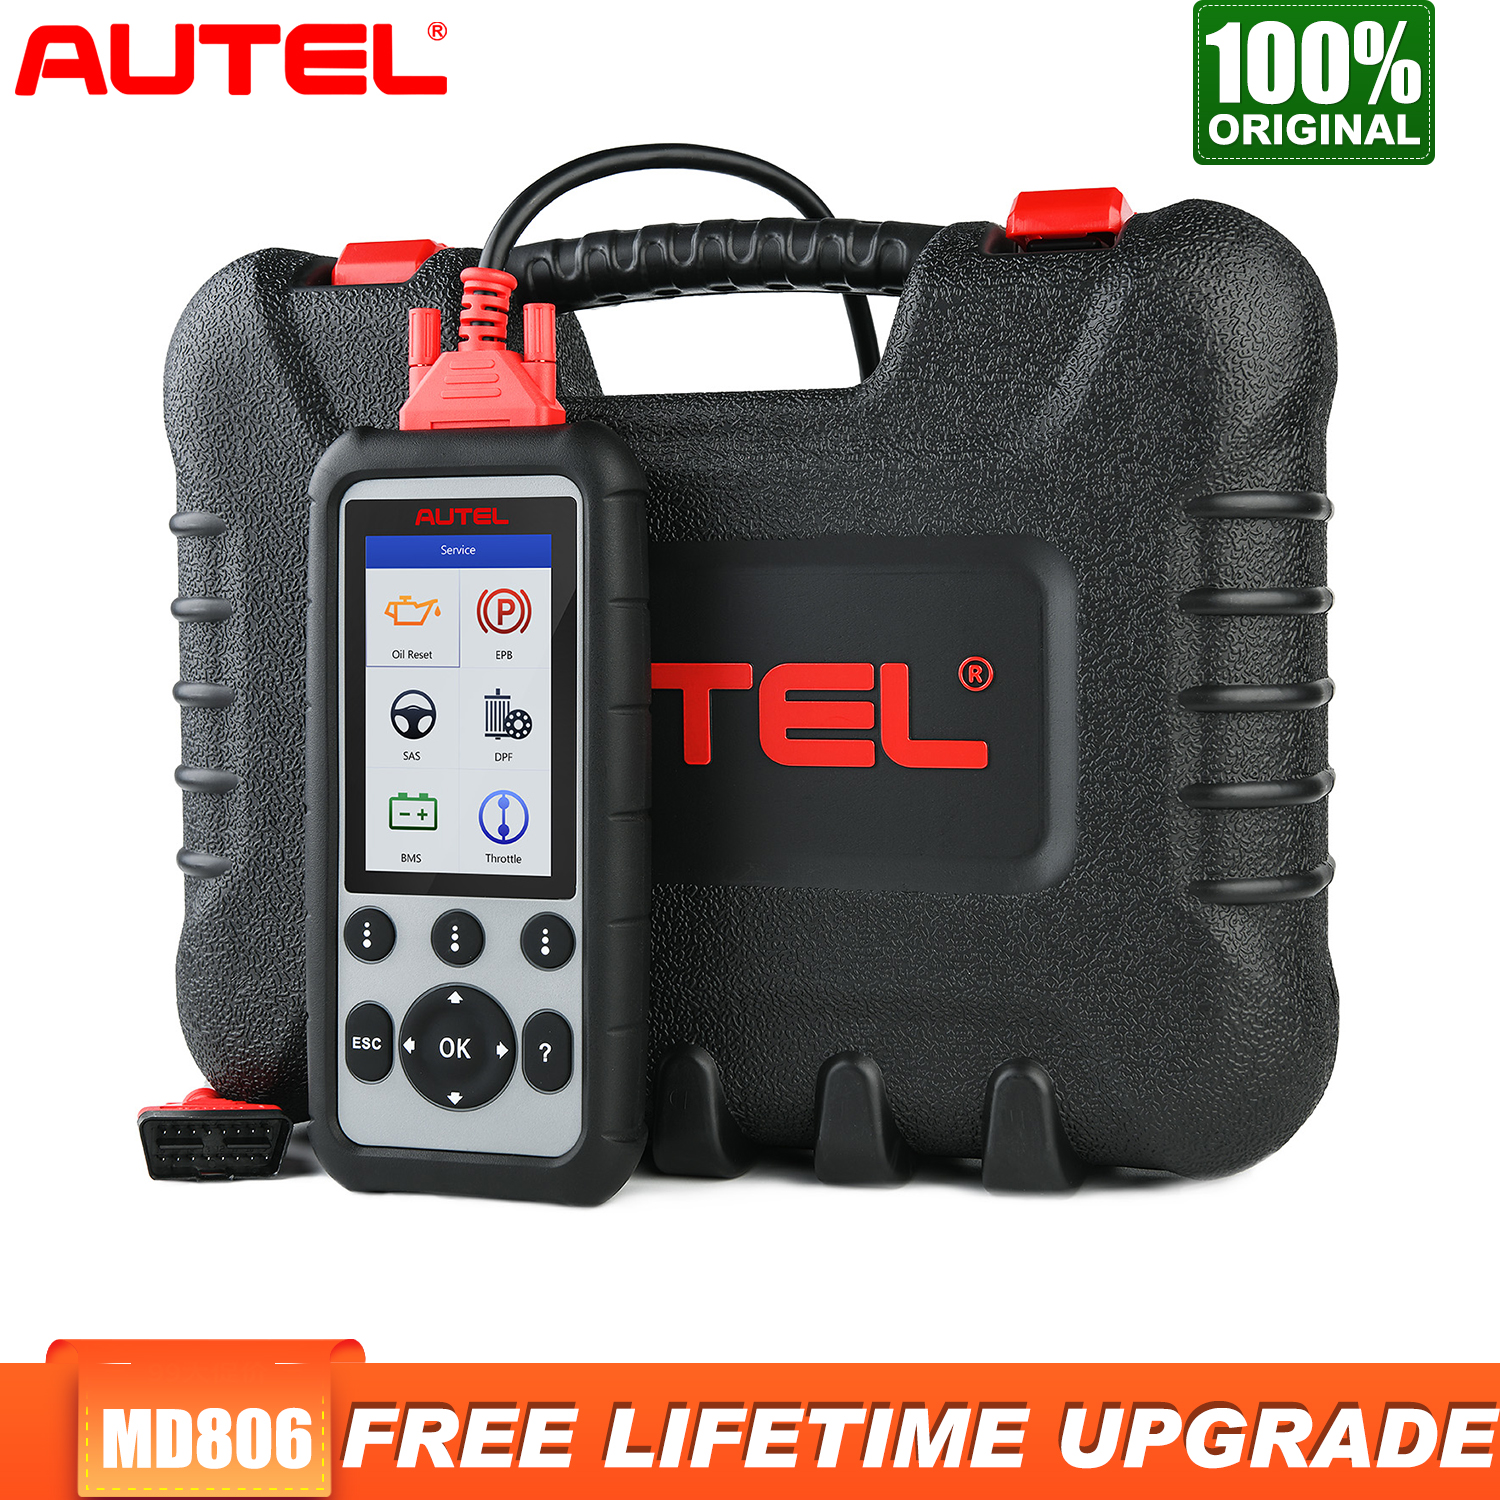 Autel MD806 Obd2 Scanner Diagnostic Auto Tool Car Diagnostic Four System Diagnoses EPB/Oil Reset/BMS DPF Batter Than MD805 MD802|Code Readers & Scan Tools| - AliExpress